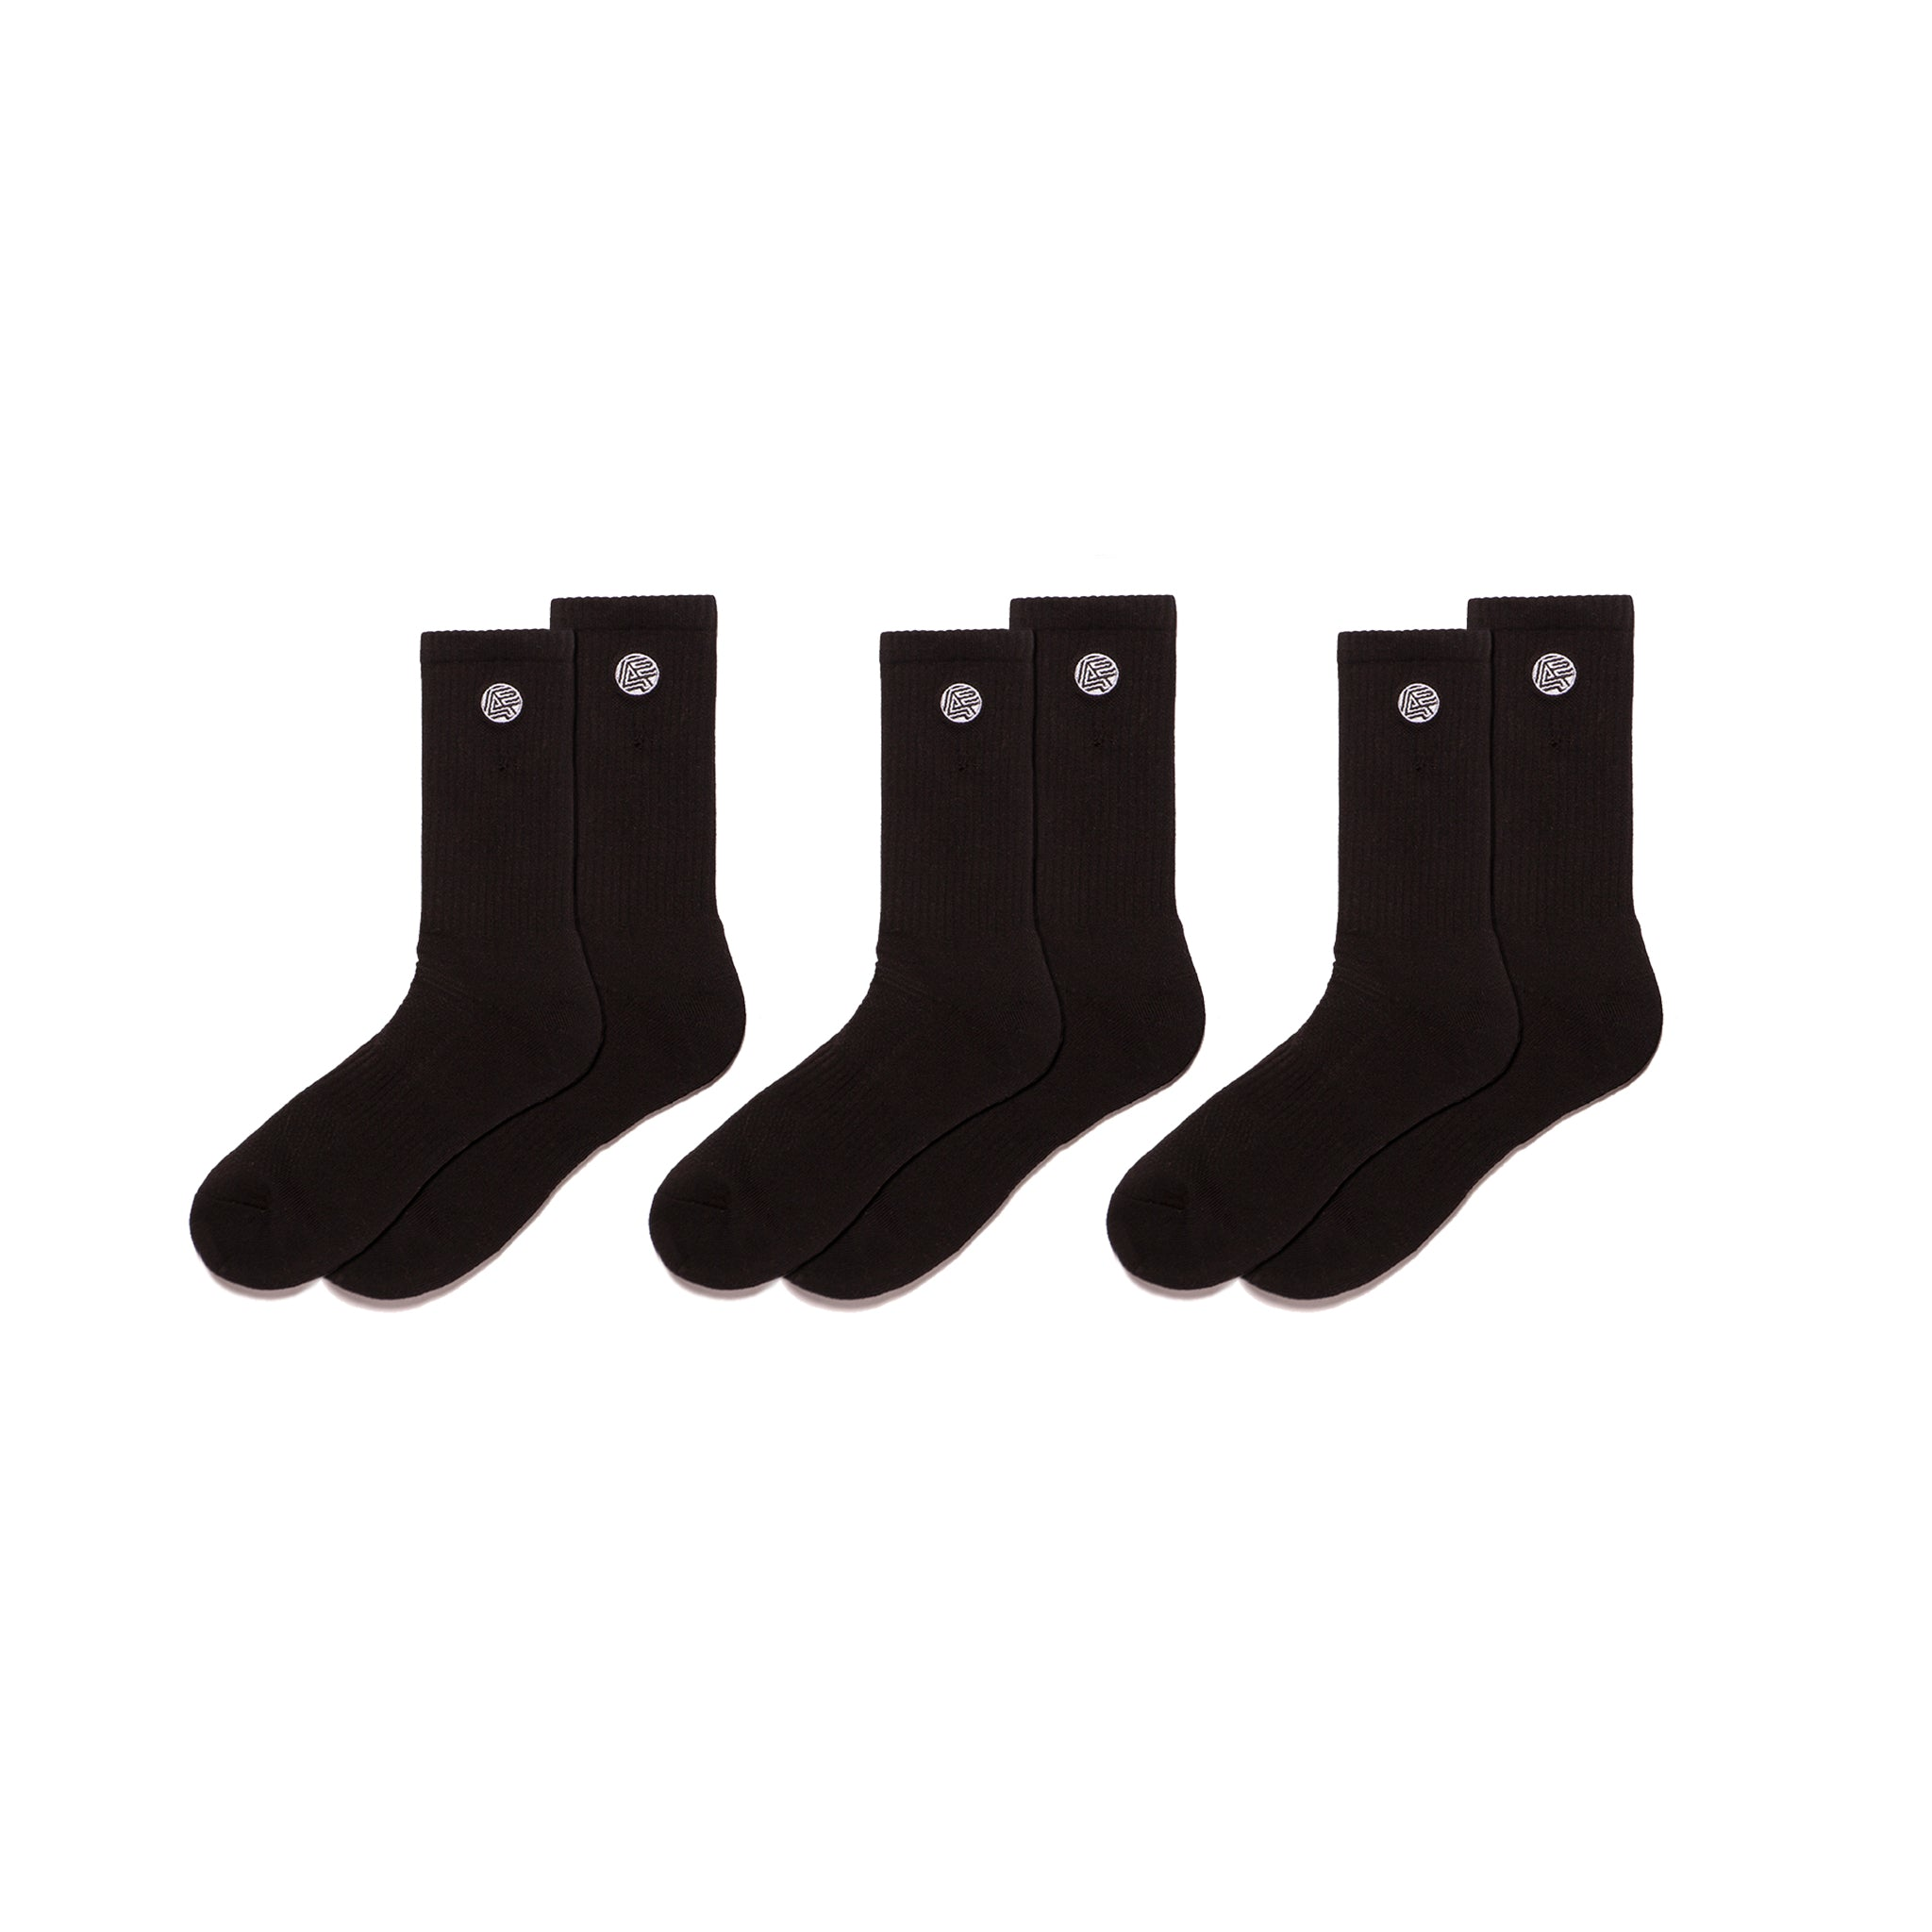 A&P Athletic Socks (Pack of 3) - BLACK